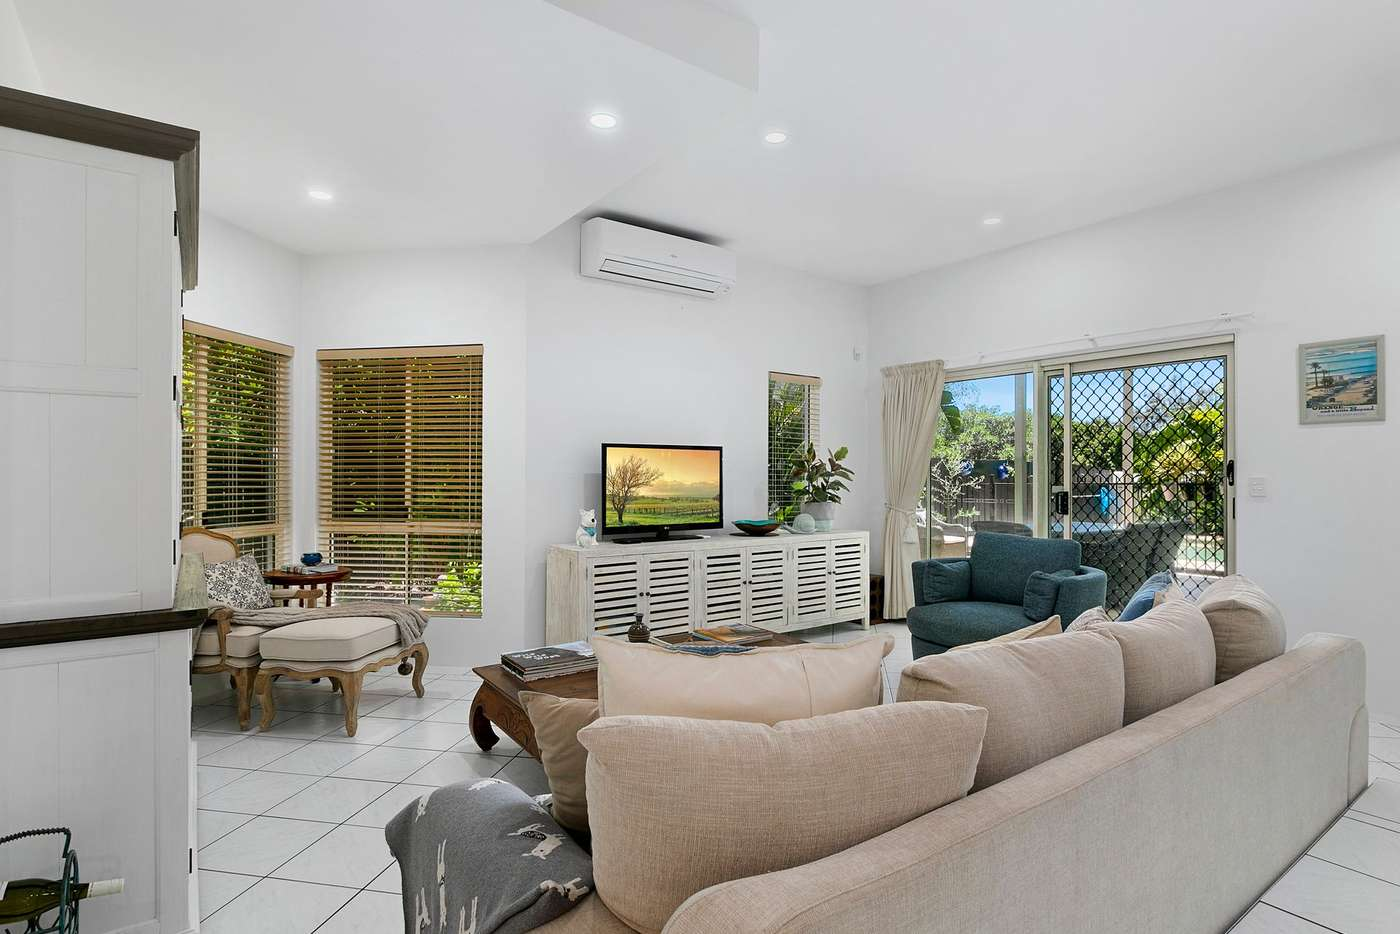 Sixth view of Homely house listing, 59 Wavecrest Drive, Castaways Beach QLD 4567